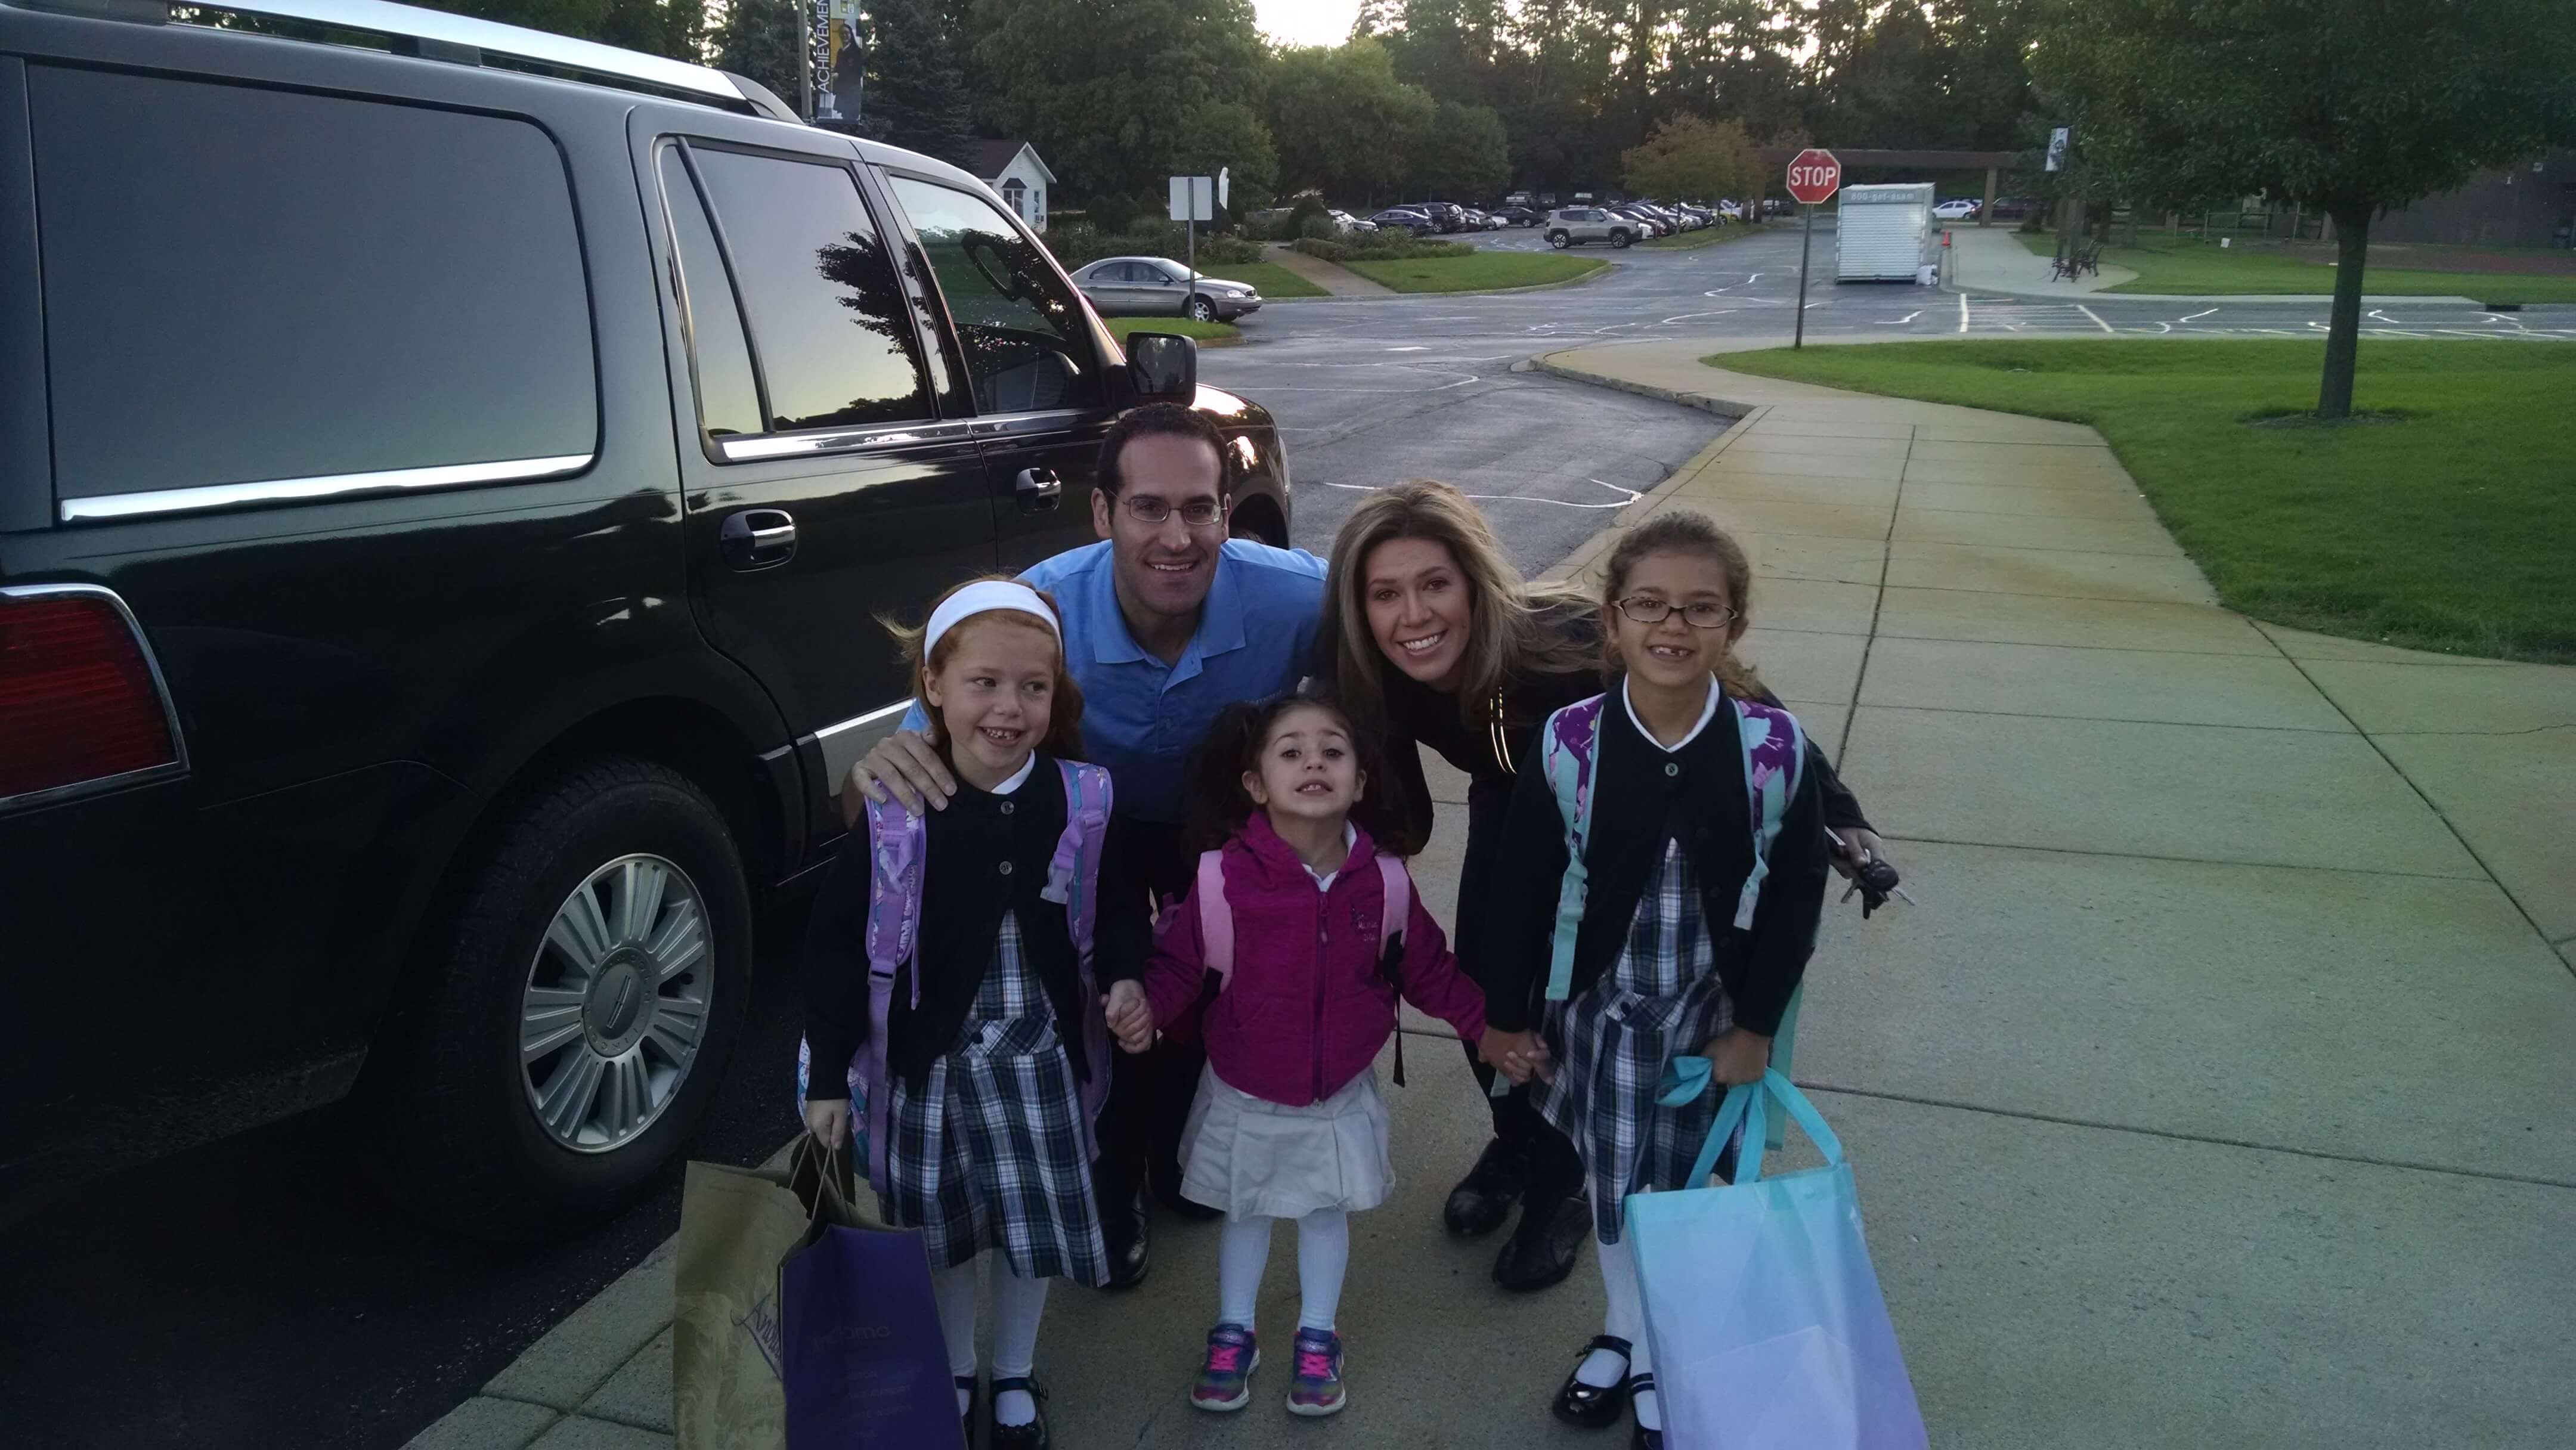 First day of preschool for little Giada Tocco. She is with her sisters, Lillian and Nina, and her parents.